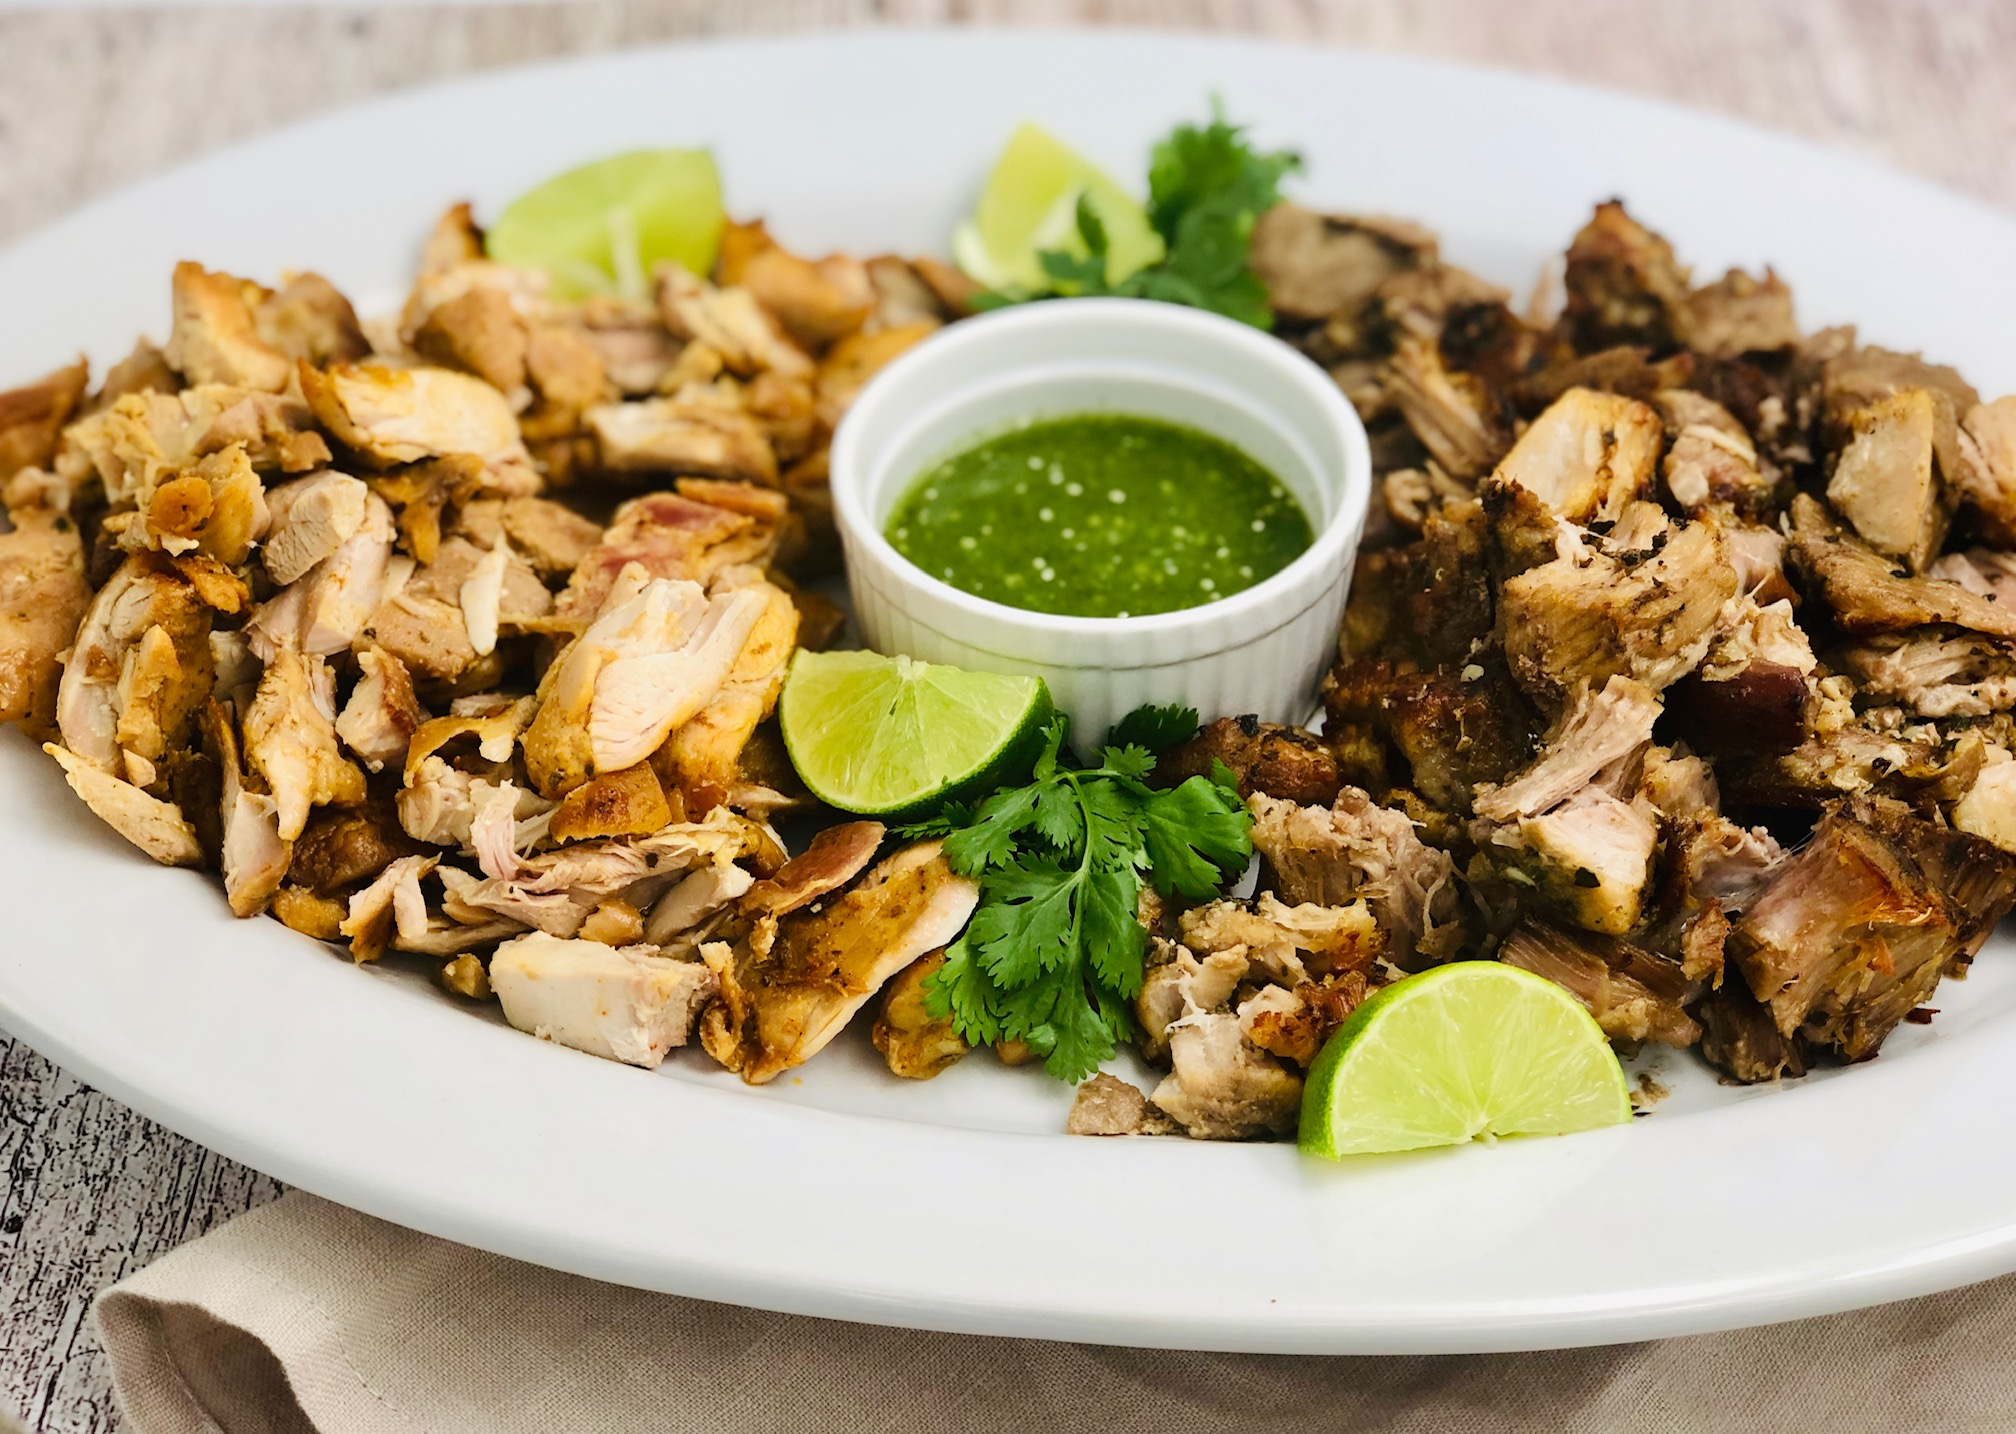 Grilled Chicken and Pork Carnitas Platter